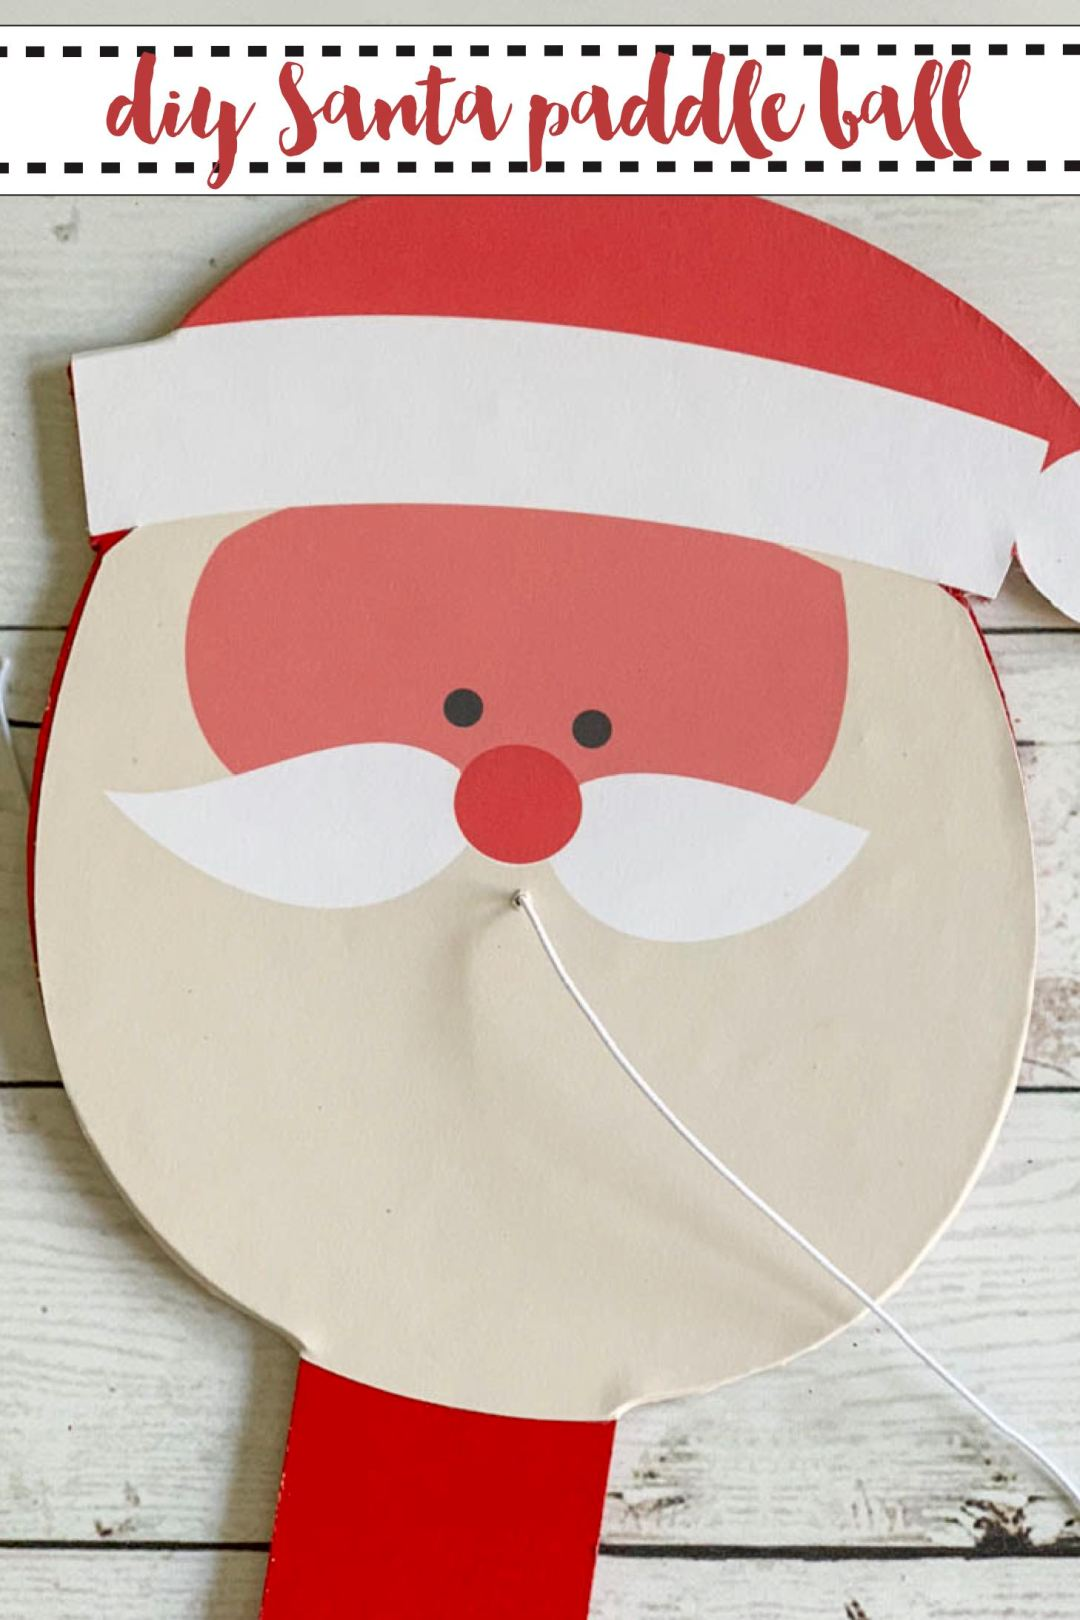 DIY Santa Paddle Ball